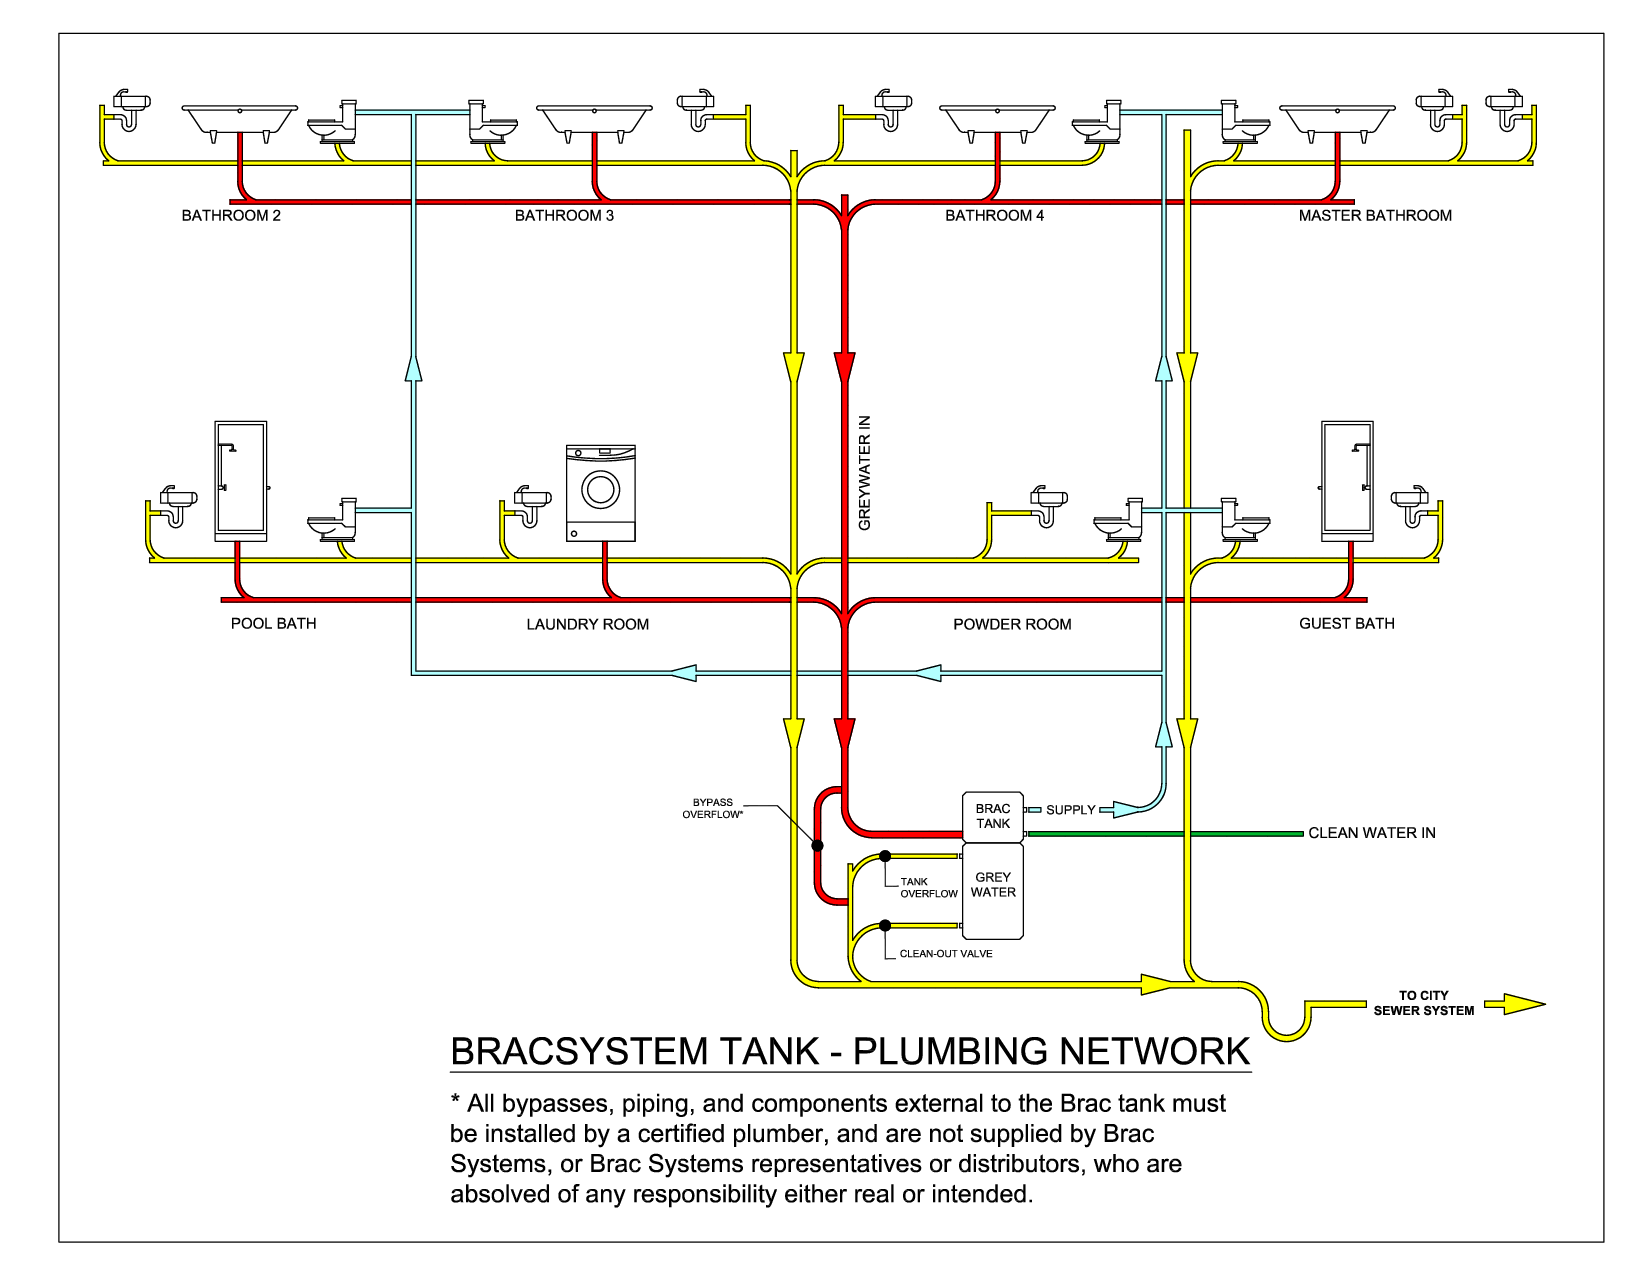 Mobile Home Plumbing Systems | Plumbing Network Diagram.pdf | Modern on cell phone battery charger circuit diagram, mobile home plumbing schematic, bathroom plumbing diagram, house water plumbing diagram, main water line diagram, mobile home roof over prices, house plumbing system diagram, hot water heating system diagram, residential plumbing system diagram, home plumbing system diagram, modular home plumbing diagram, water supply diagram, home water pipe diagram, mobile home drain lines, mobile home pex water lines, mobile home water lines layout, home sewer system diagram, house water line diagram, typical house plumbing diagram, airstream trailer plumbing diagram,